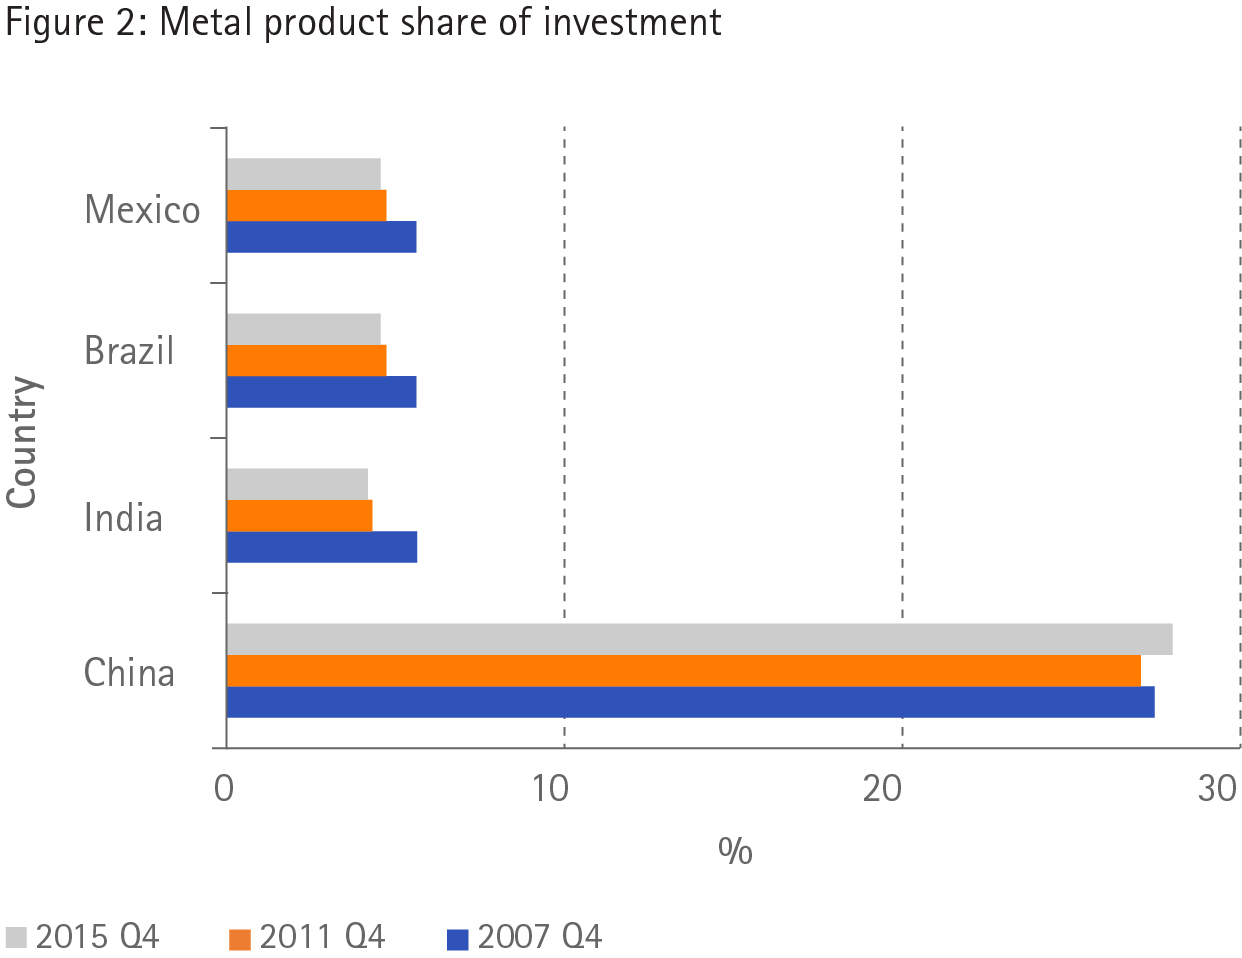 Metal product share of investment